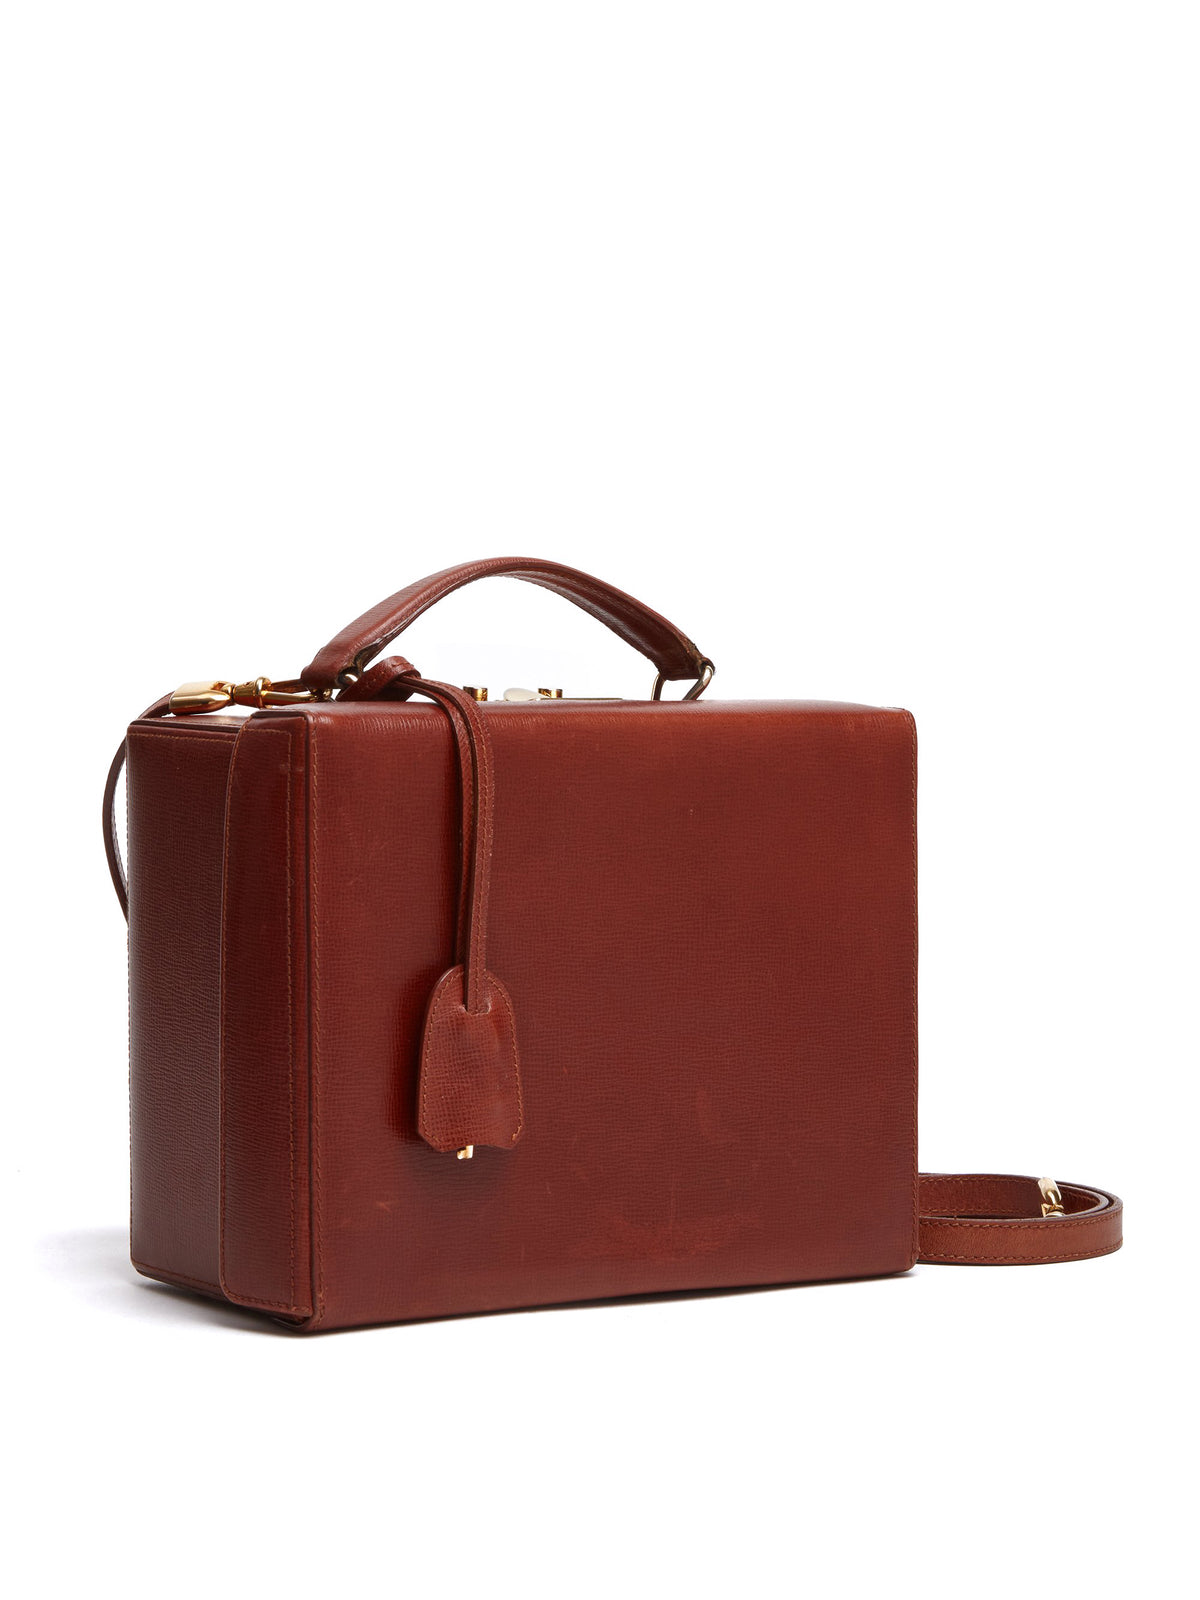 Mark Cross Vintage Grace Leather Box Bag Cognac Side